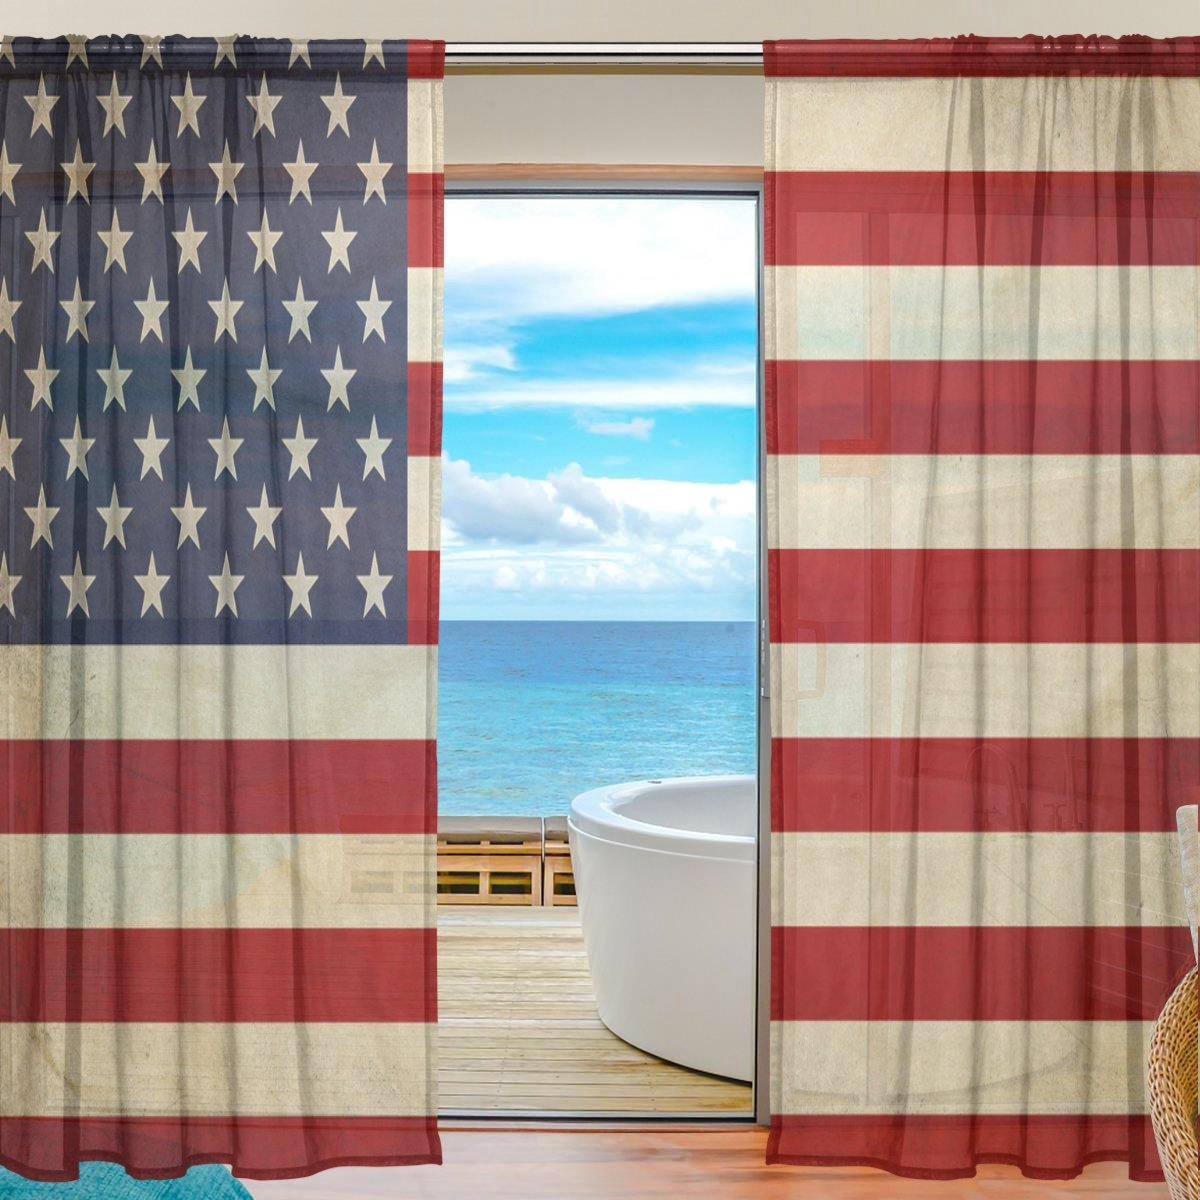 SEULIFE Window Sheer Curtain, Vintage American USA Flag Voile Curtain Drapes for Door Kitchen Living Room Bedroom 55x78 inches 2 Panels